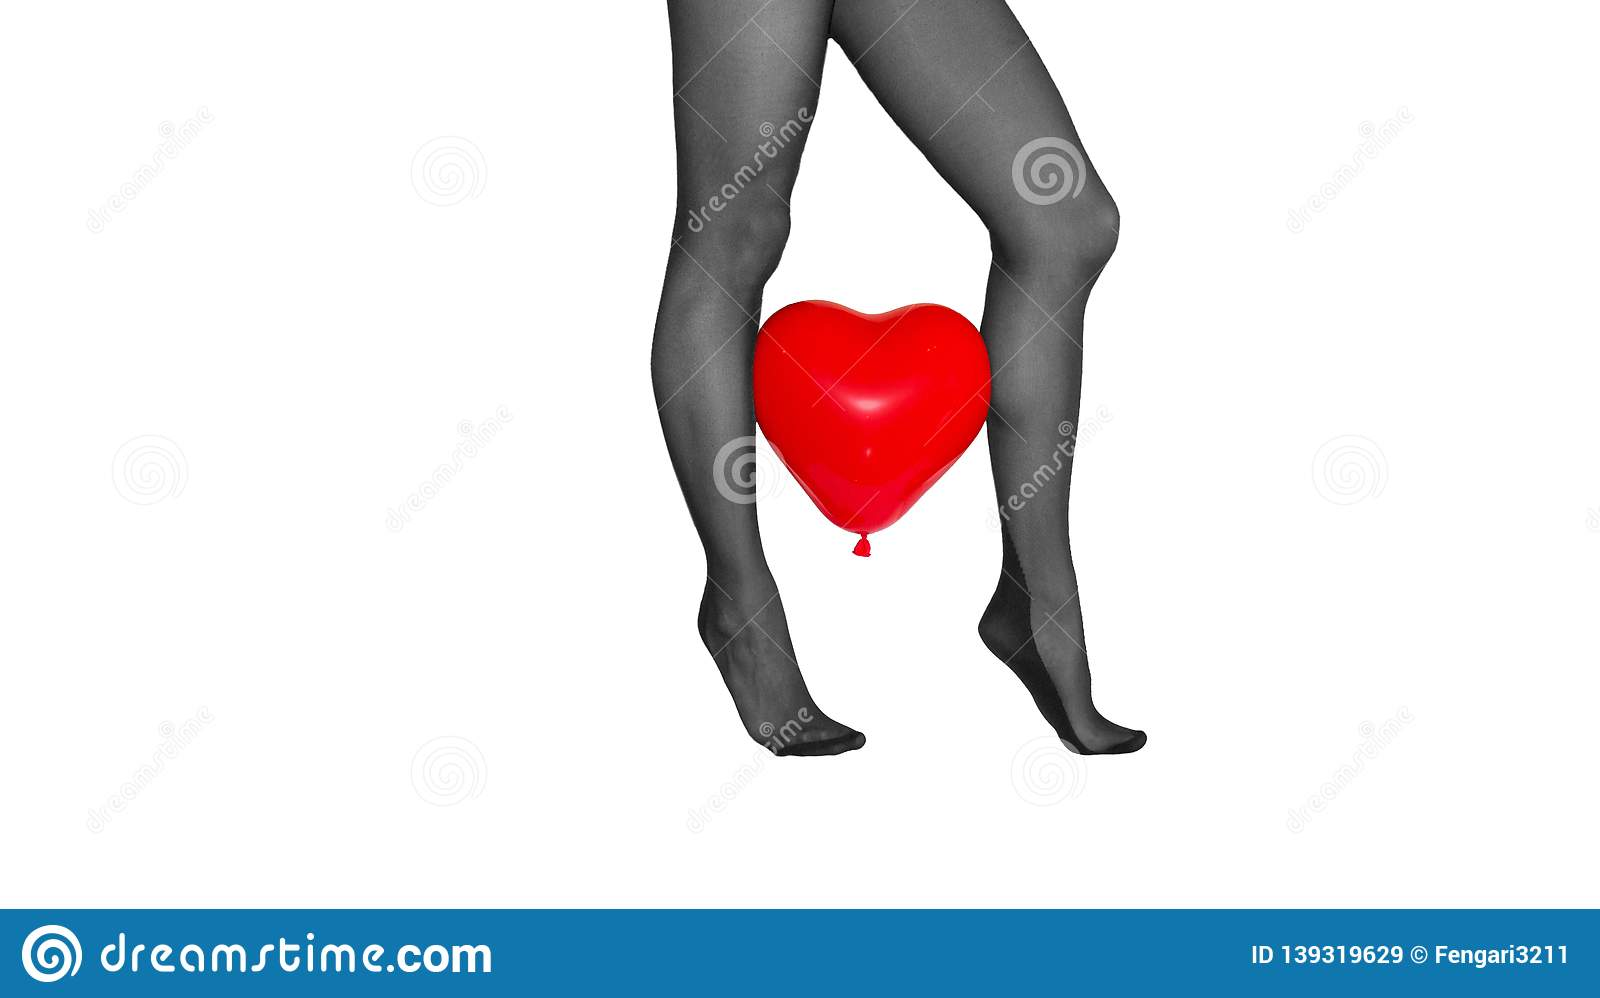 91314381f3862 Woman legs on the toes in black tights with red heart baloon between on  white background